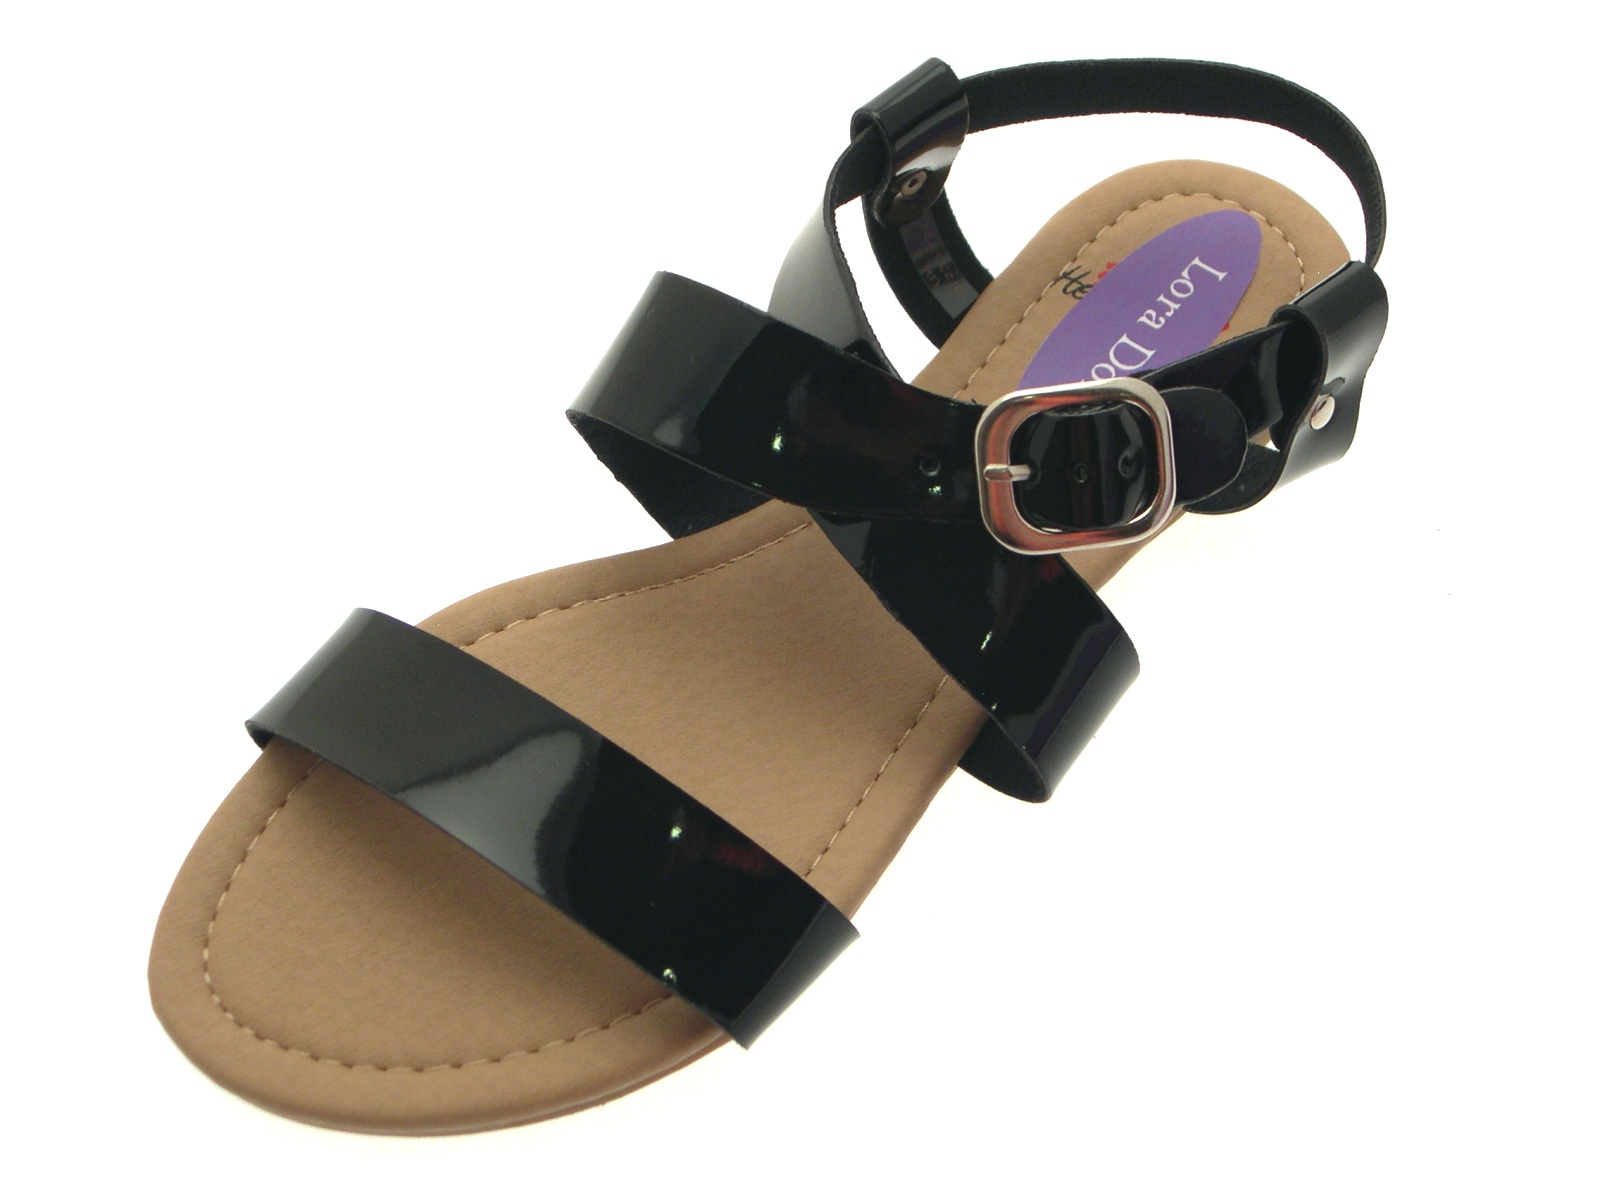 Black patent sandals uk - Womens Patent Flat Strappy Sandals Ladies Summer Buckle Open Shoes Size Uk 3 8